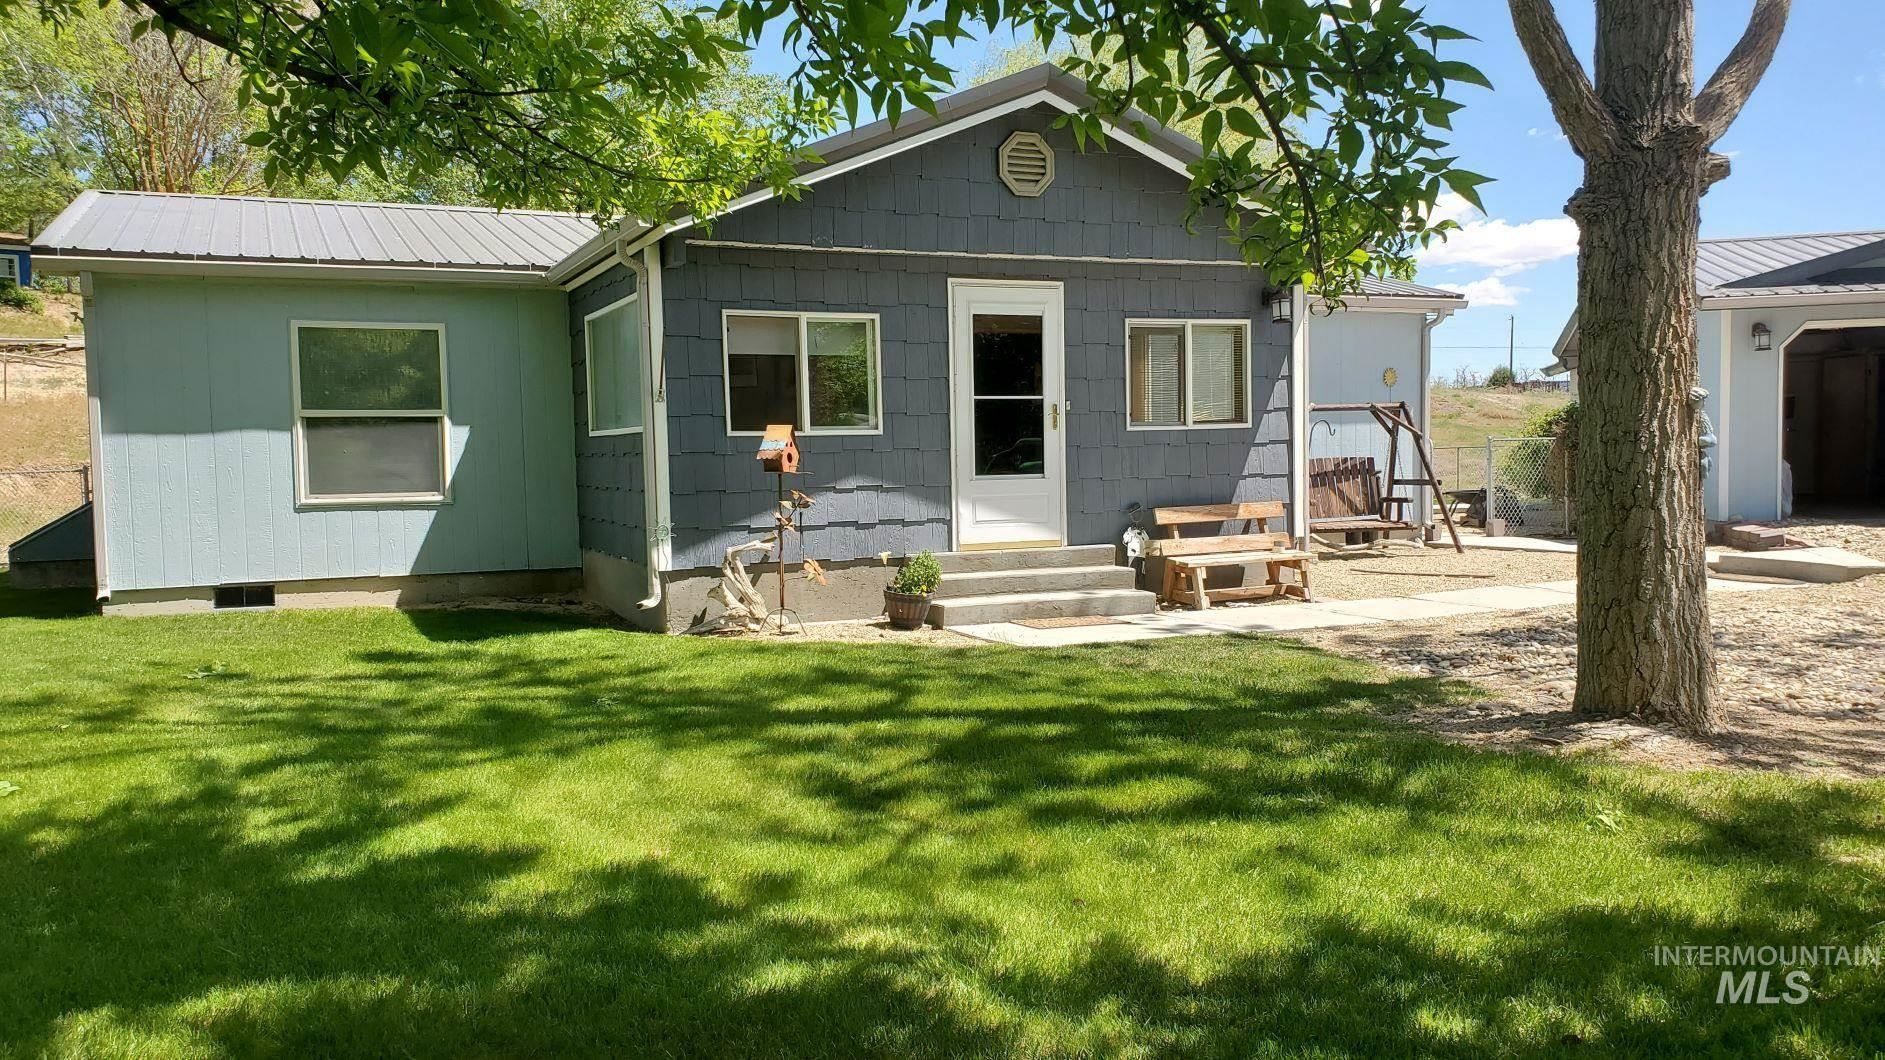 Photo of 10762 N River Rd, Payette, ID 83661-5061 (MLS # 98803265)